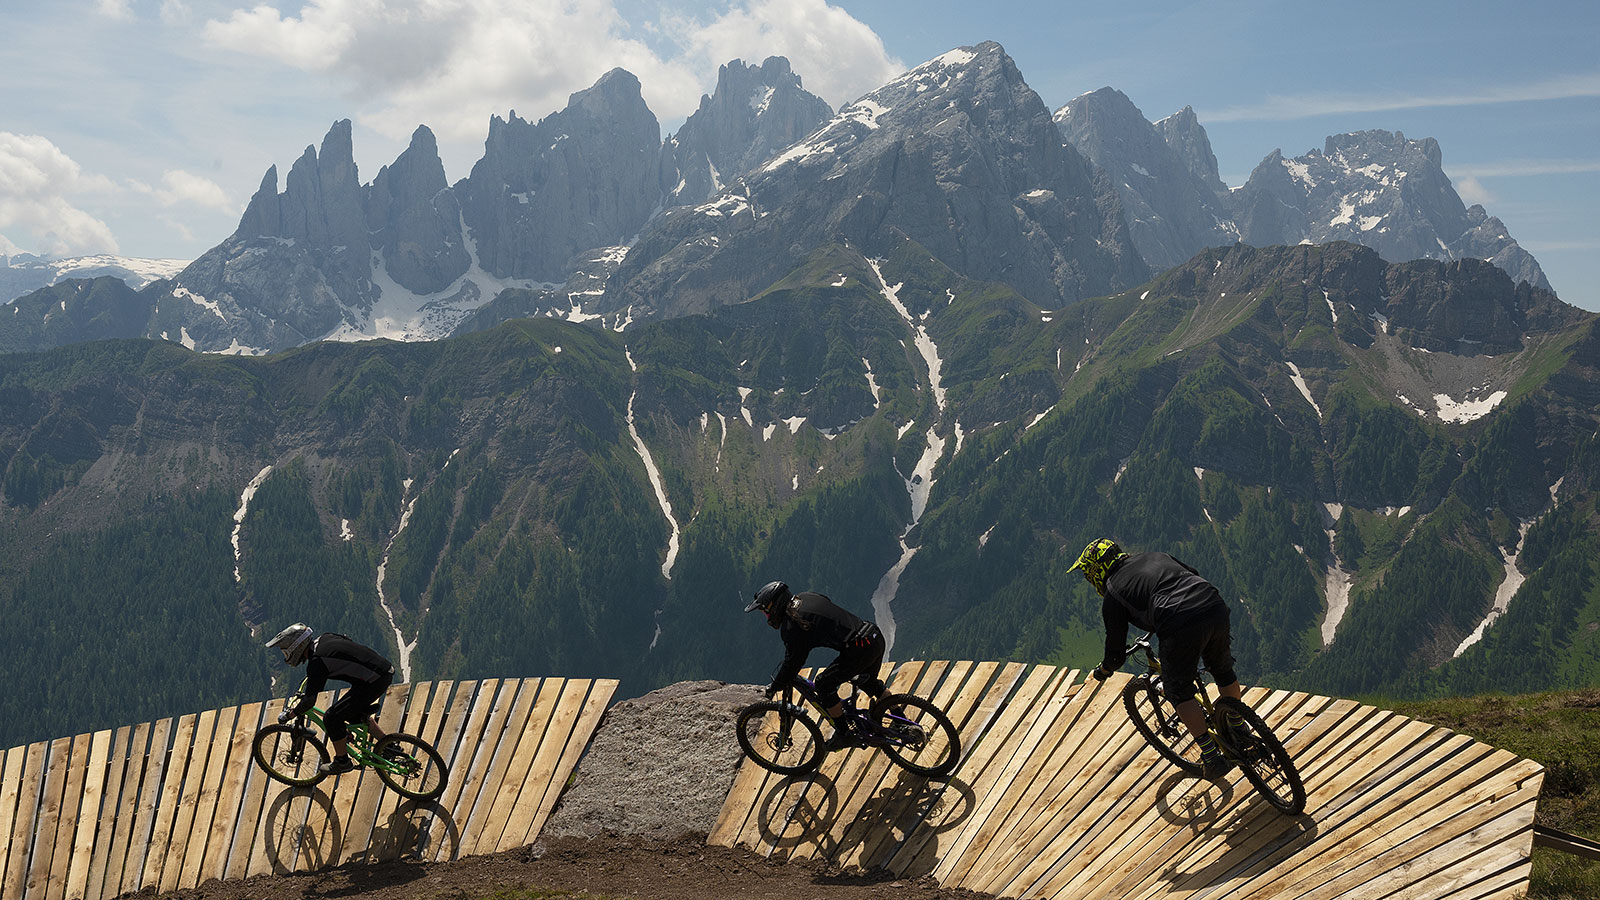 A family loads their bikes onto the cable car at Passo San Pellegrino